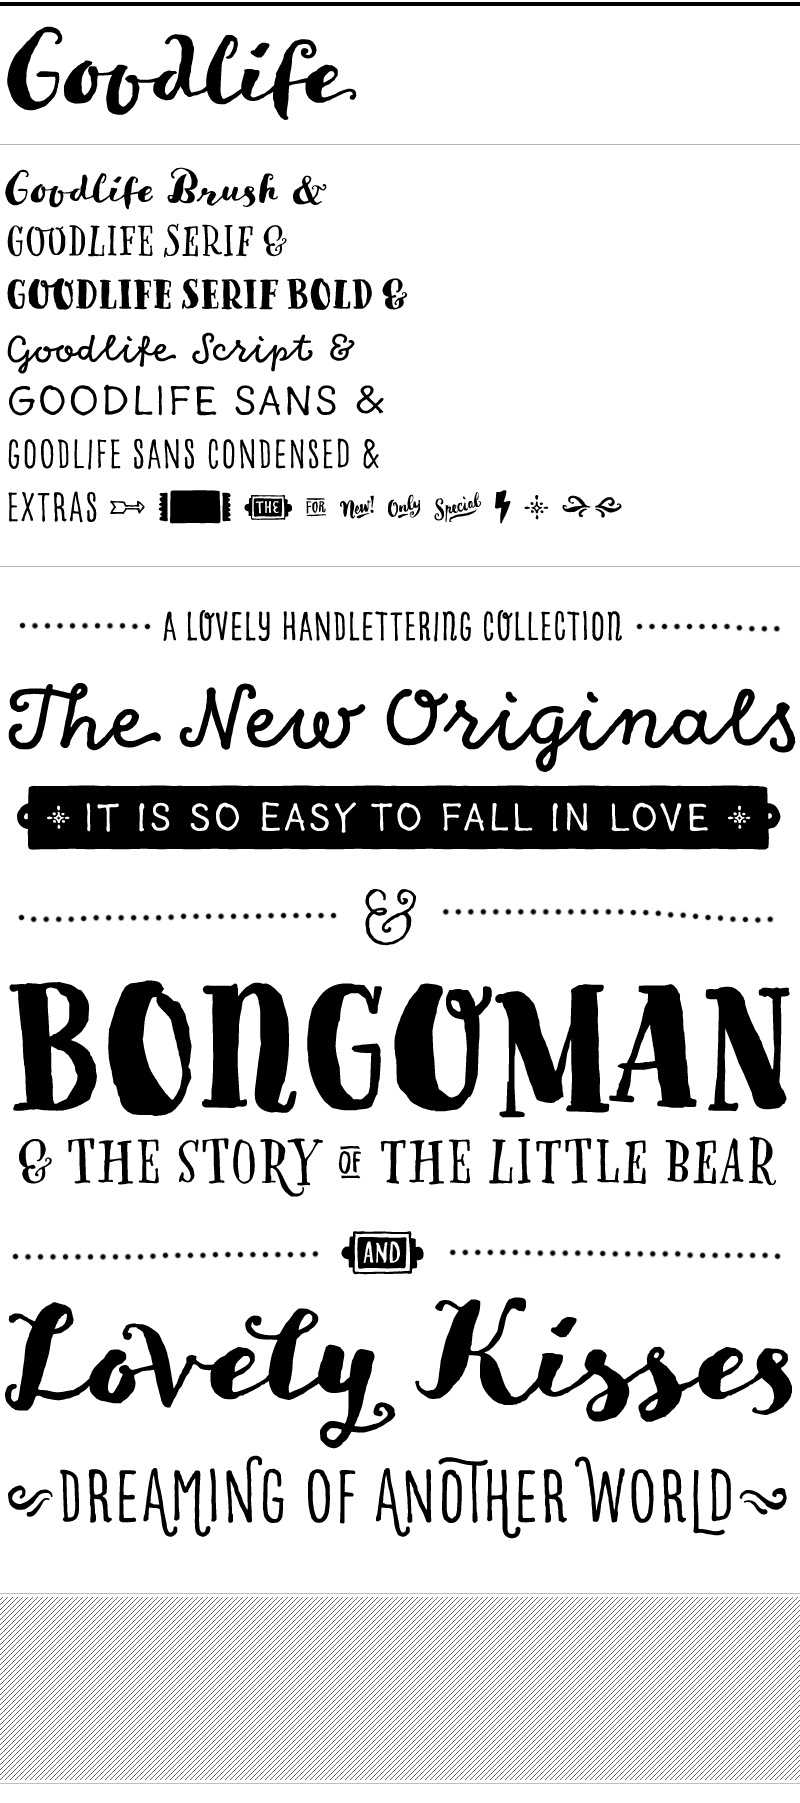 Drawn typeface different By handlettering Döhren lovely with